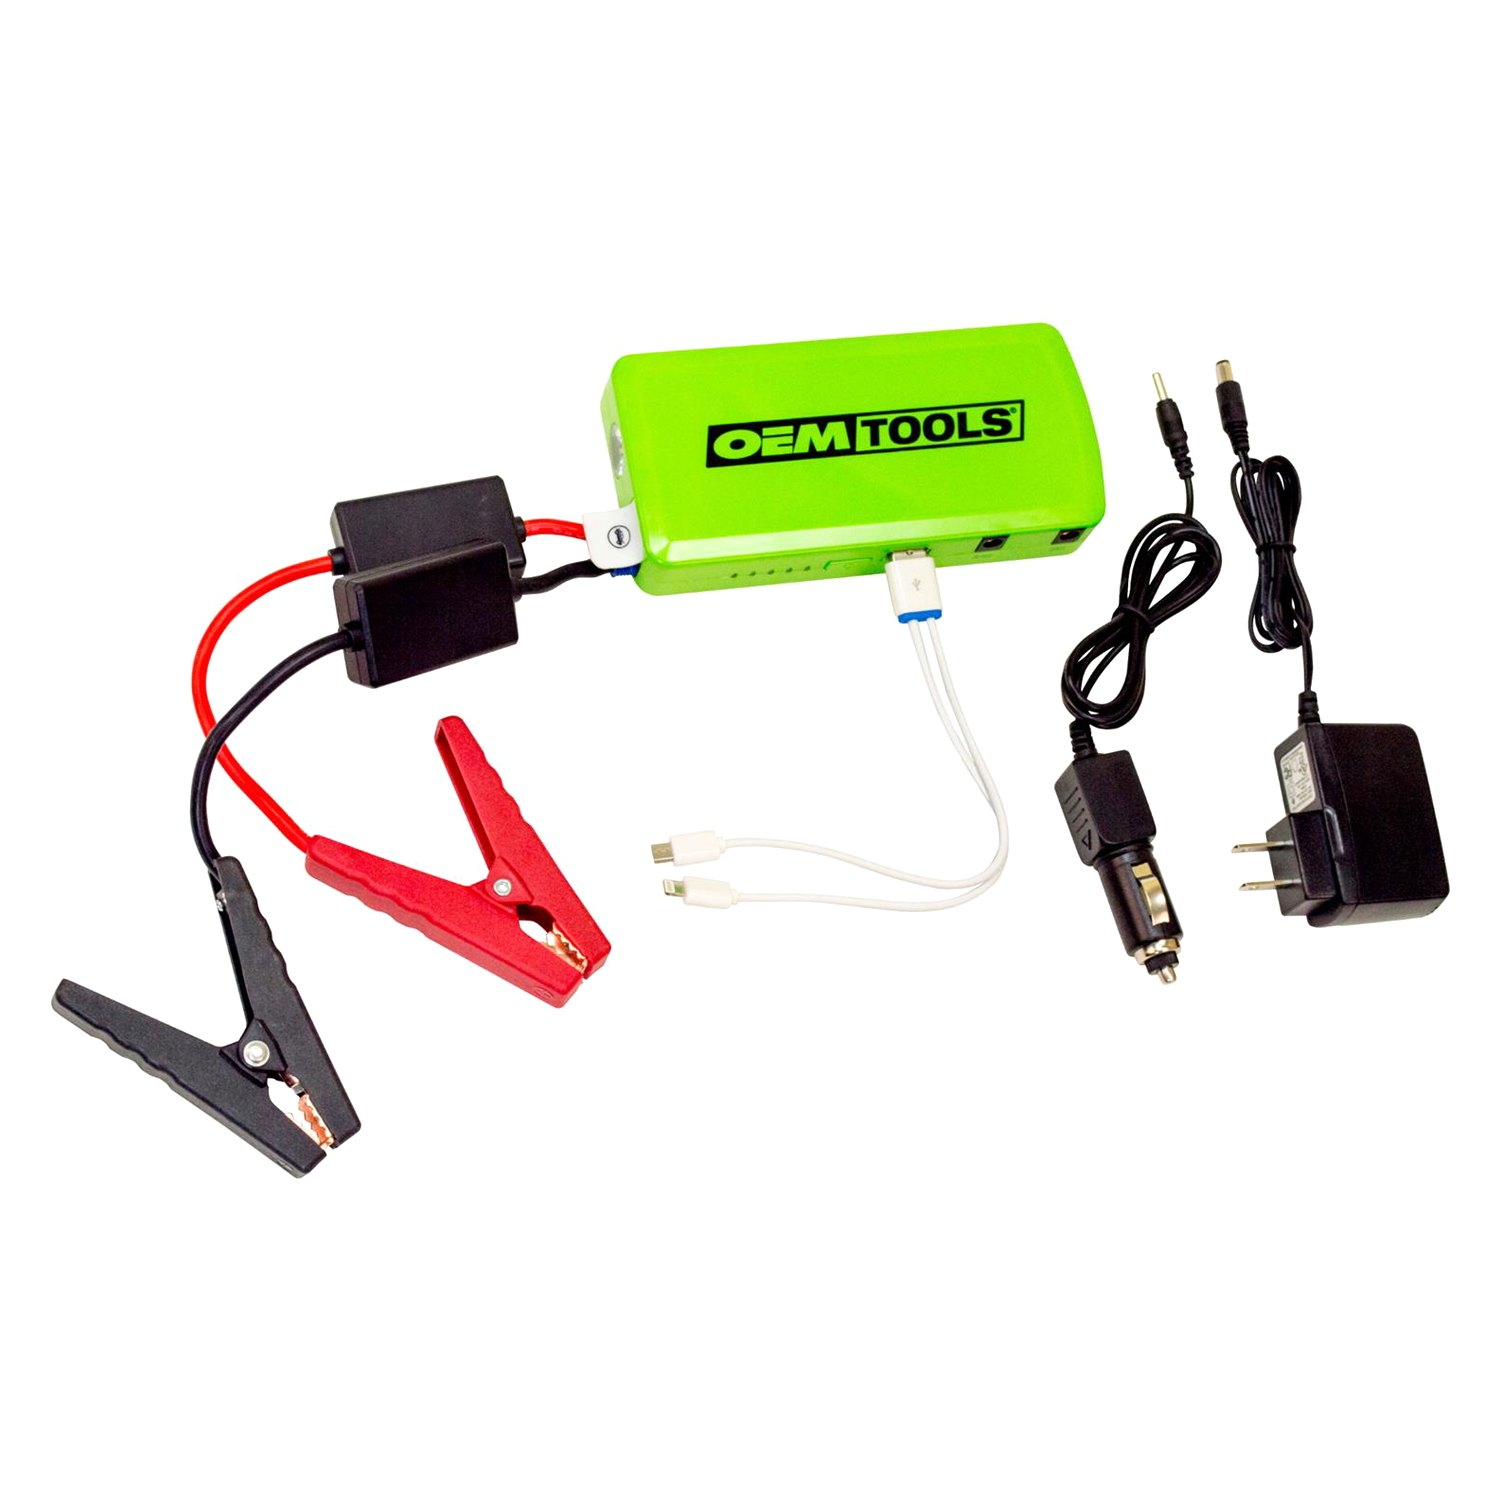 Portable Jumper Cables : Oem tools multi use portable power source with jumper